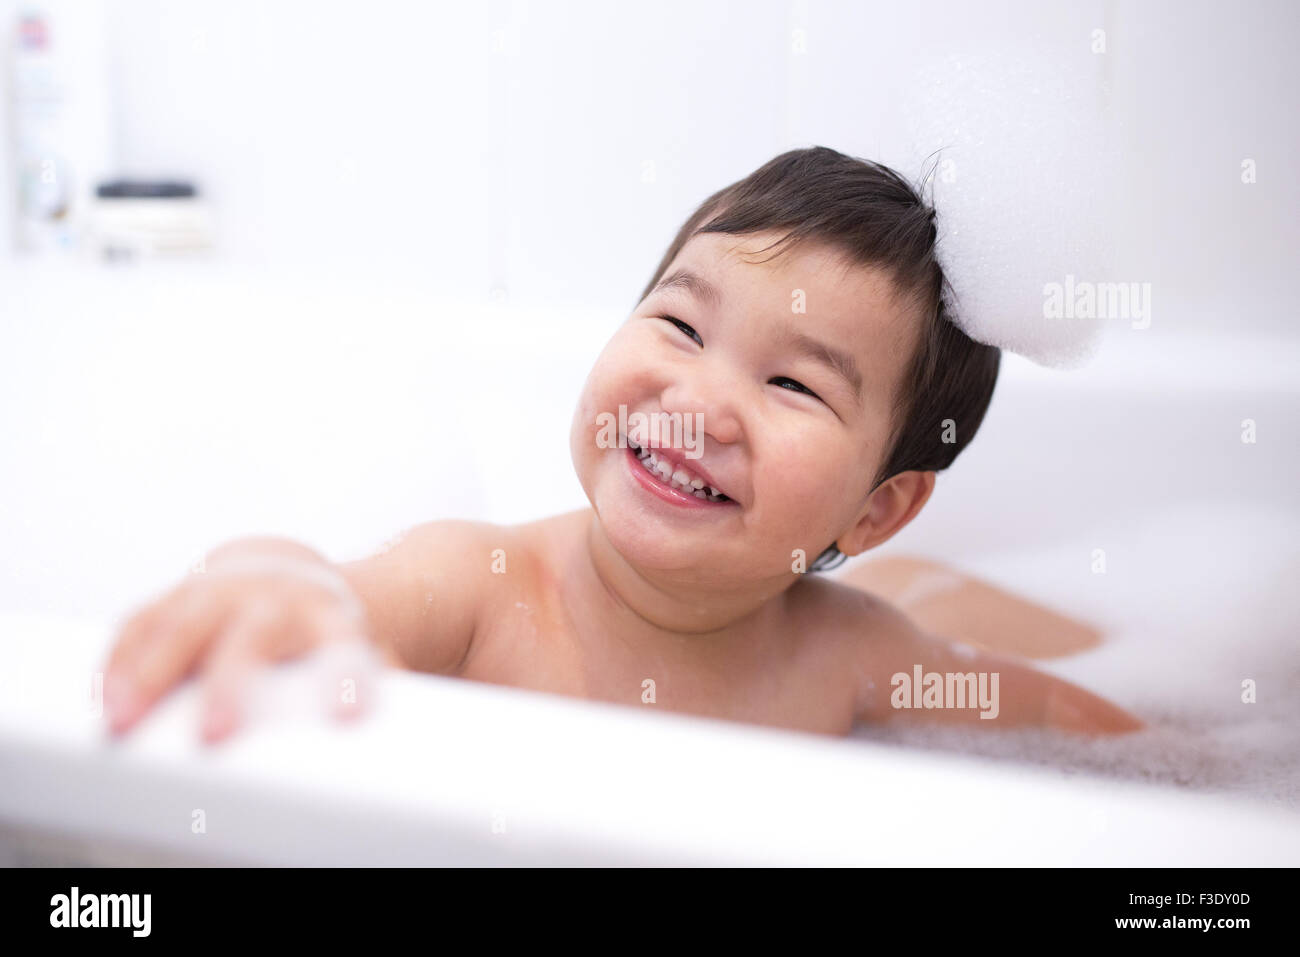 Baby boy enjoying a bubble bath, portrait - Stock Image